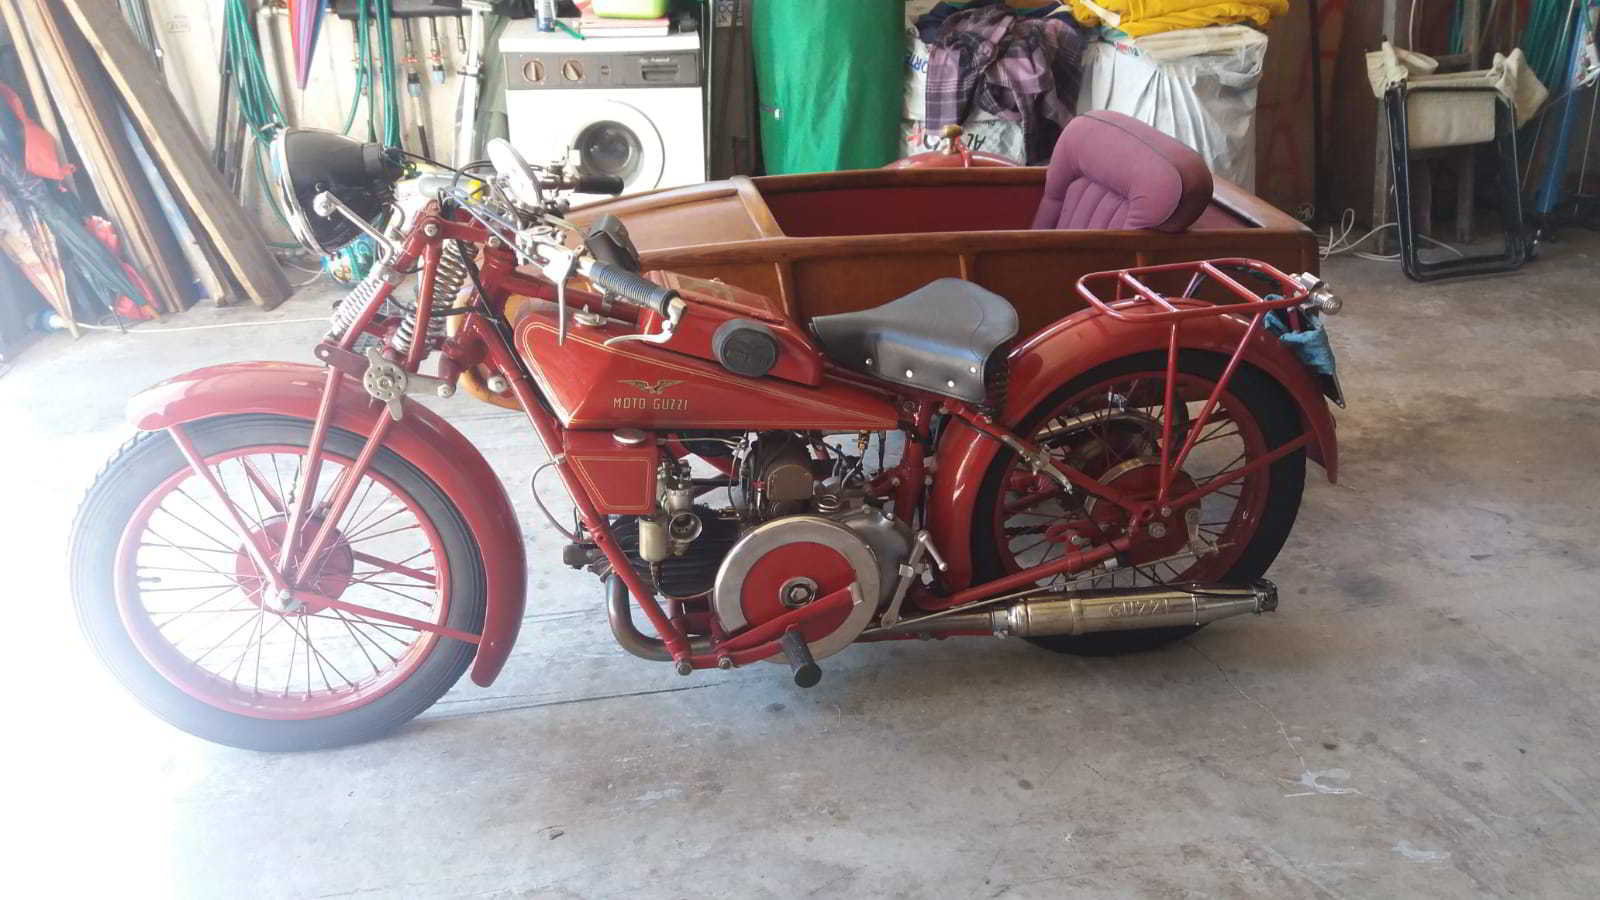 moto guzzi sport 14 sidecar 1929 For Sale (picture 4 of 4)